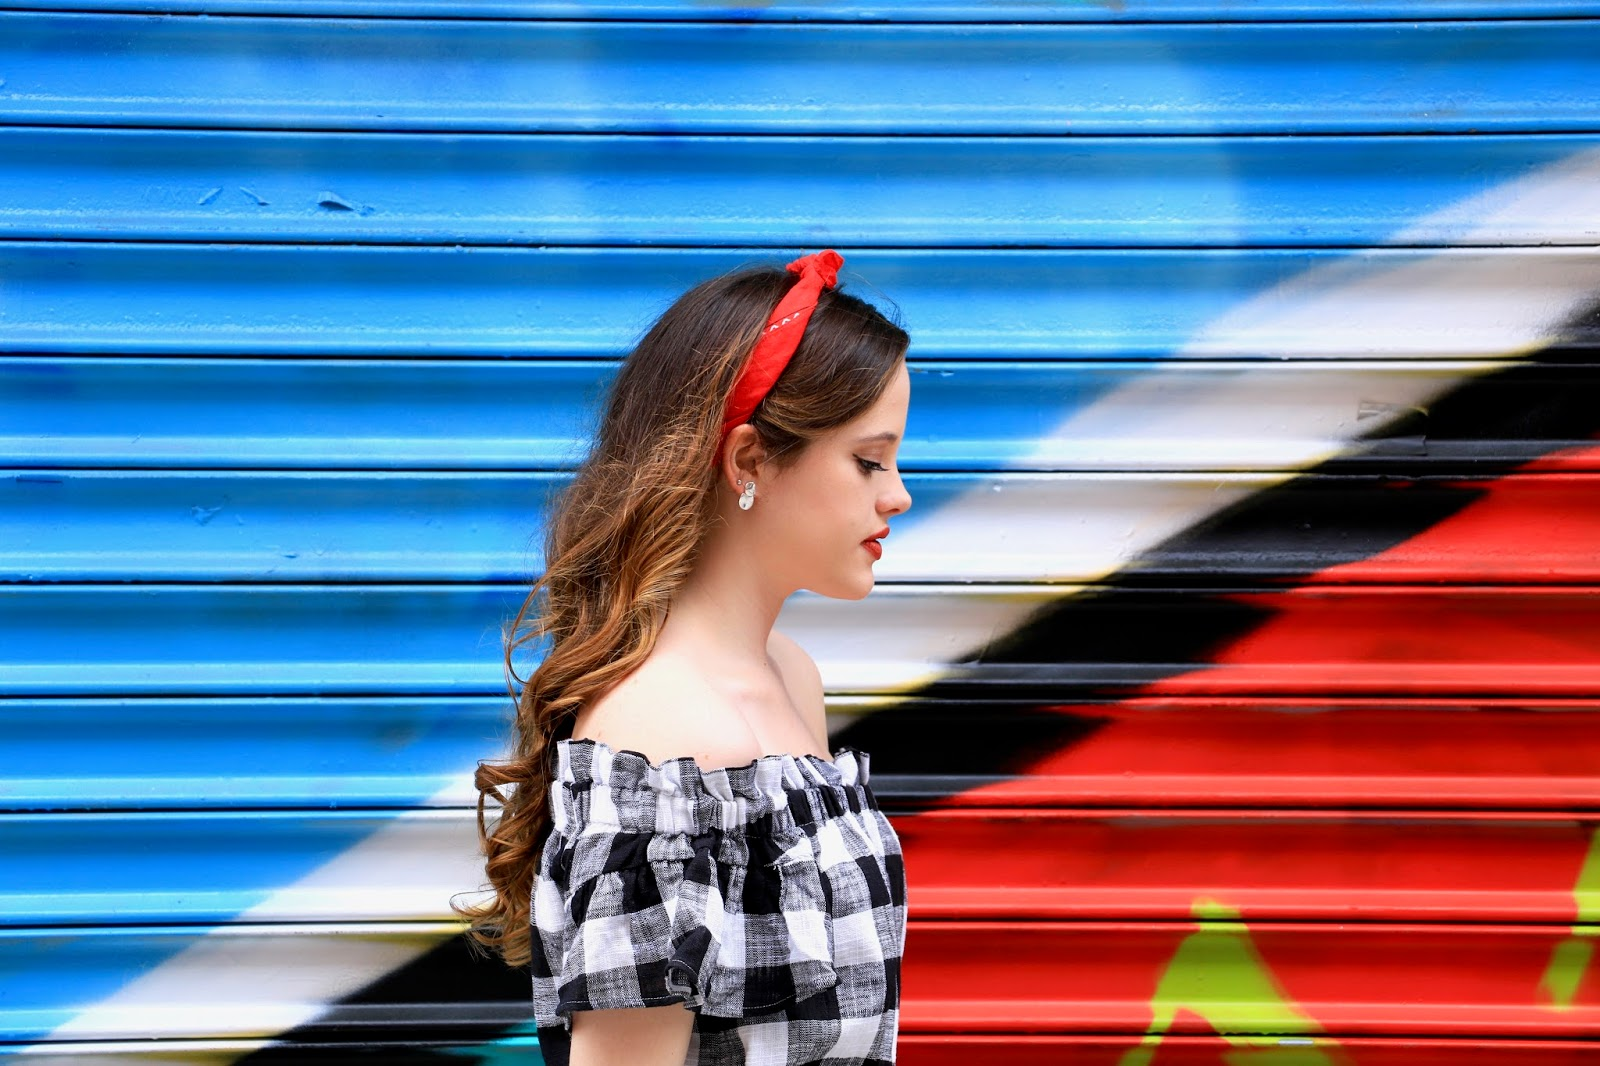 New York fashion blogger Kathleen Harper showing how to wear a red bandana as a headband